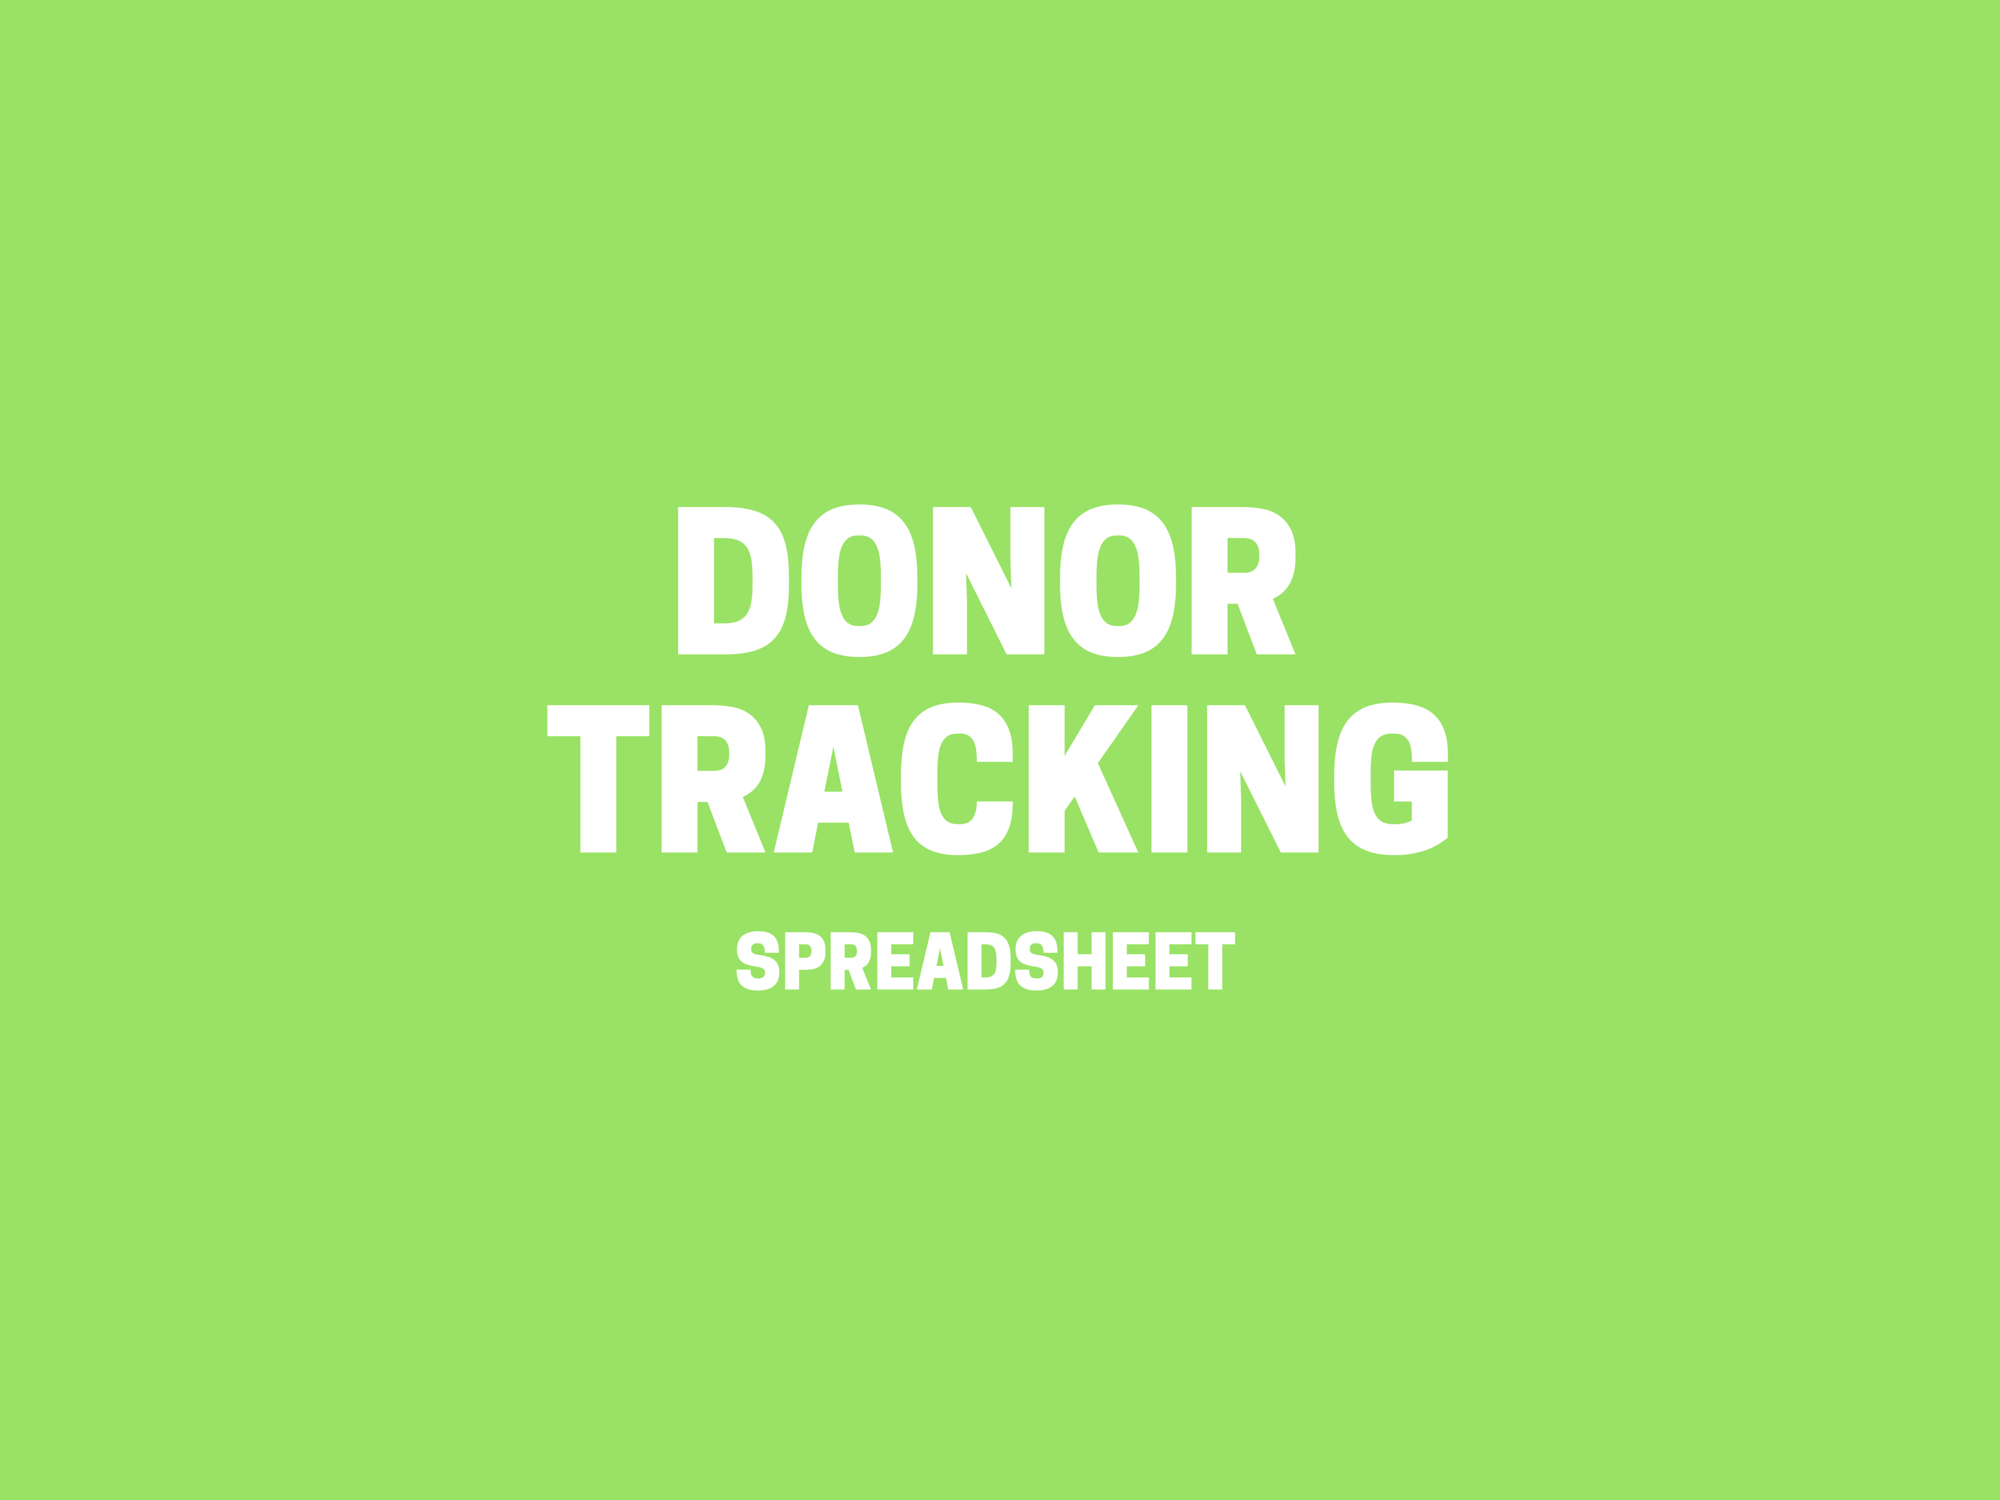 Donation Tracking Spreadsheet Inside Donor Tracking Spreadsheet > Donor Management Excel